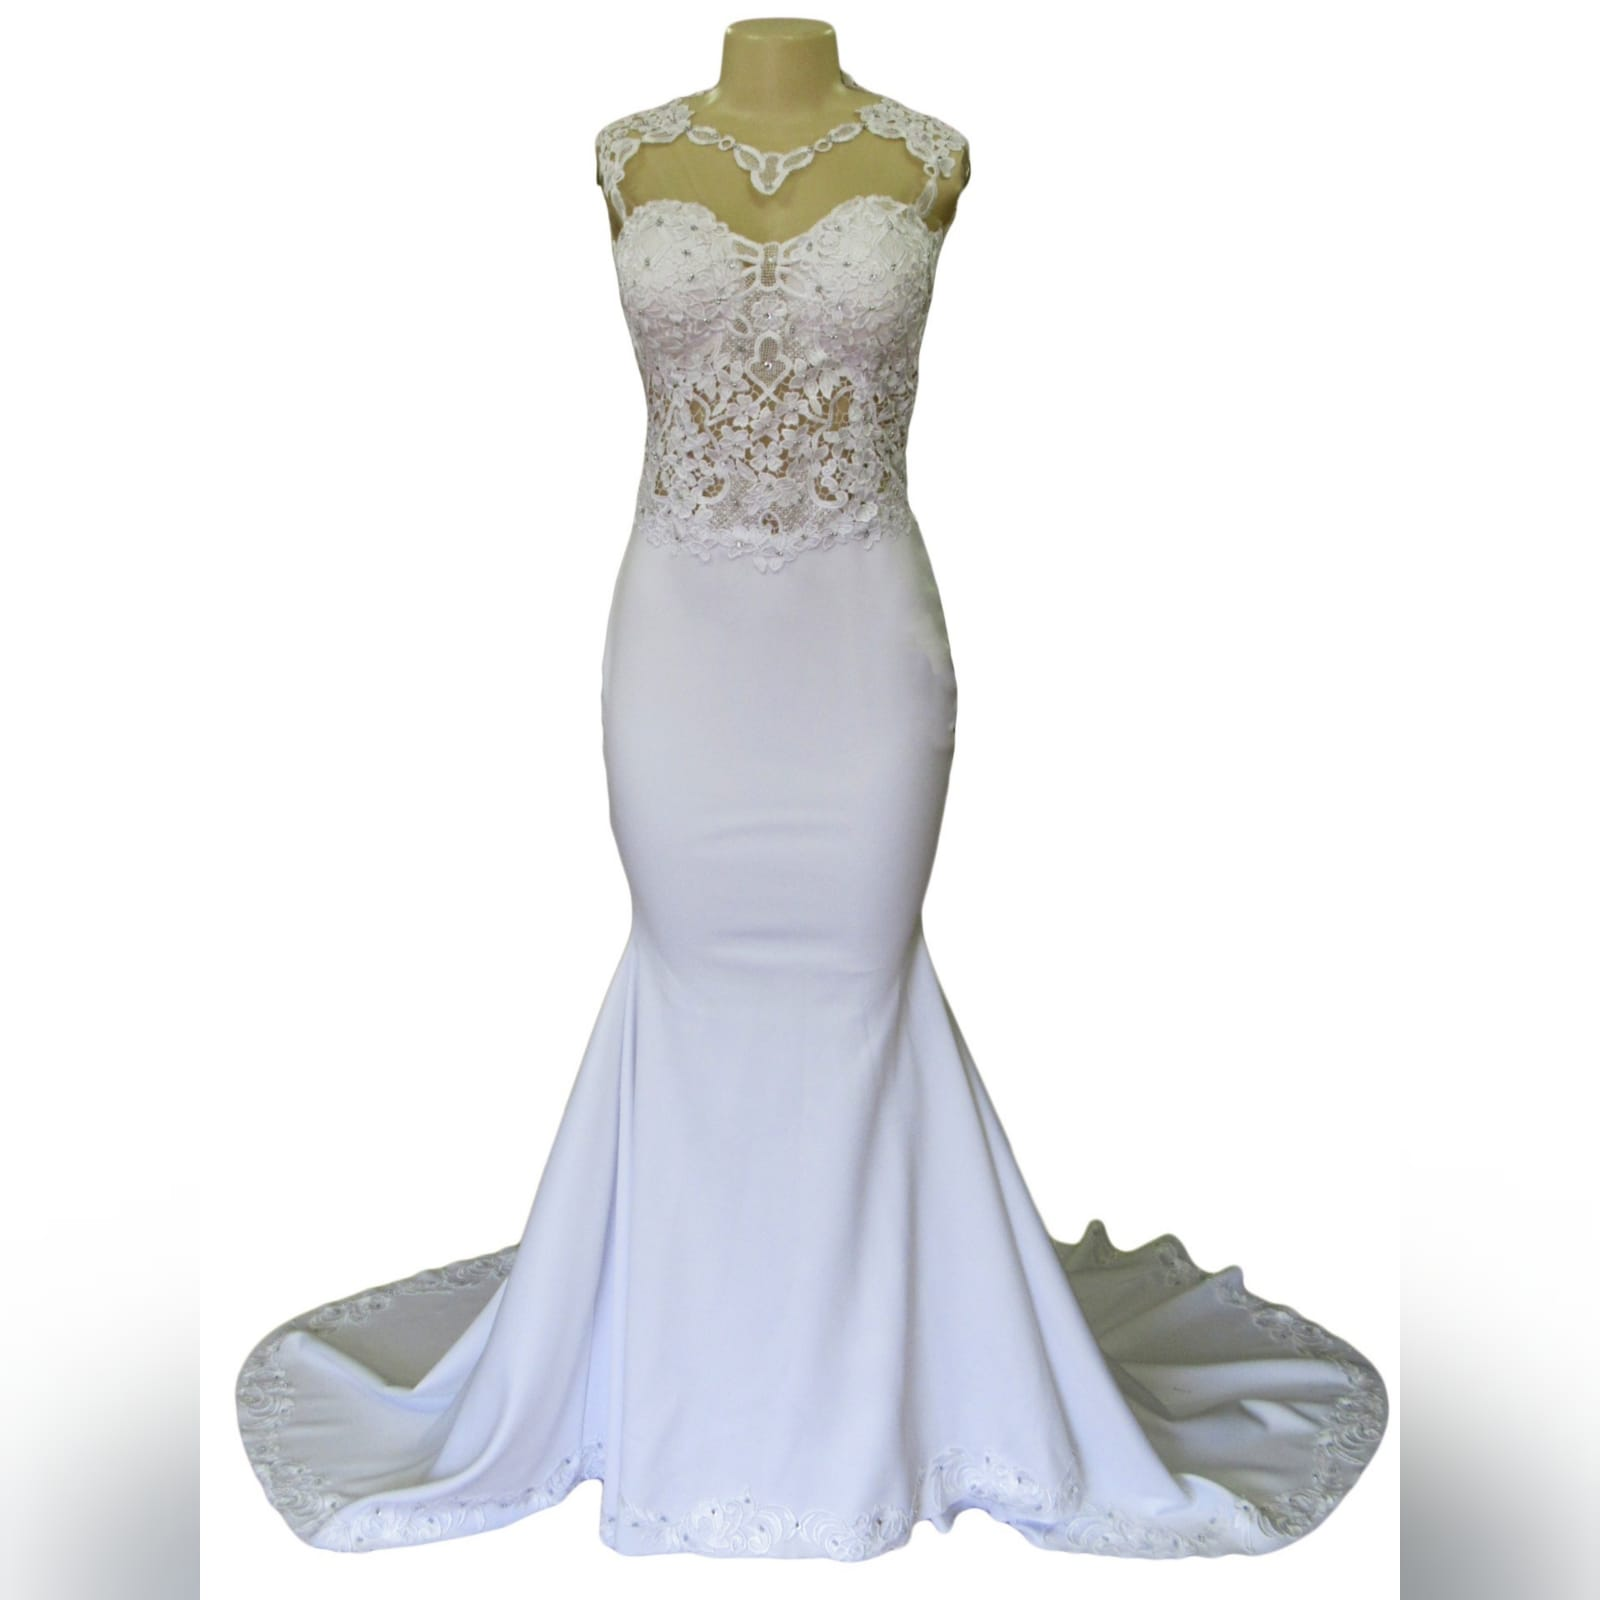 White soft mermaid lace wedding dress illusion back 11 white soft mermaid lace wedding dress with an illusion neckline detailed with lace. Illusion back detailed with buttons and lace and a lace bodice. Bottom with a train and border with lace detail. Blush length veil with lace edging.